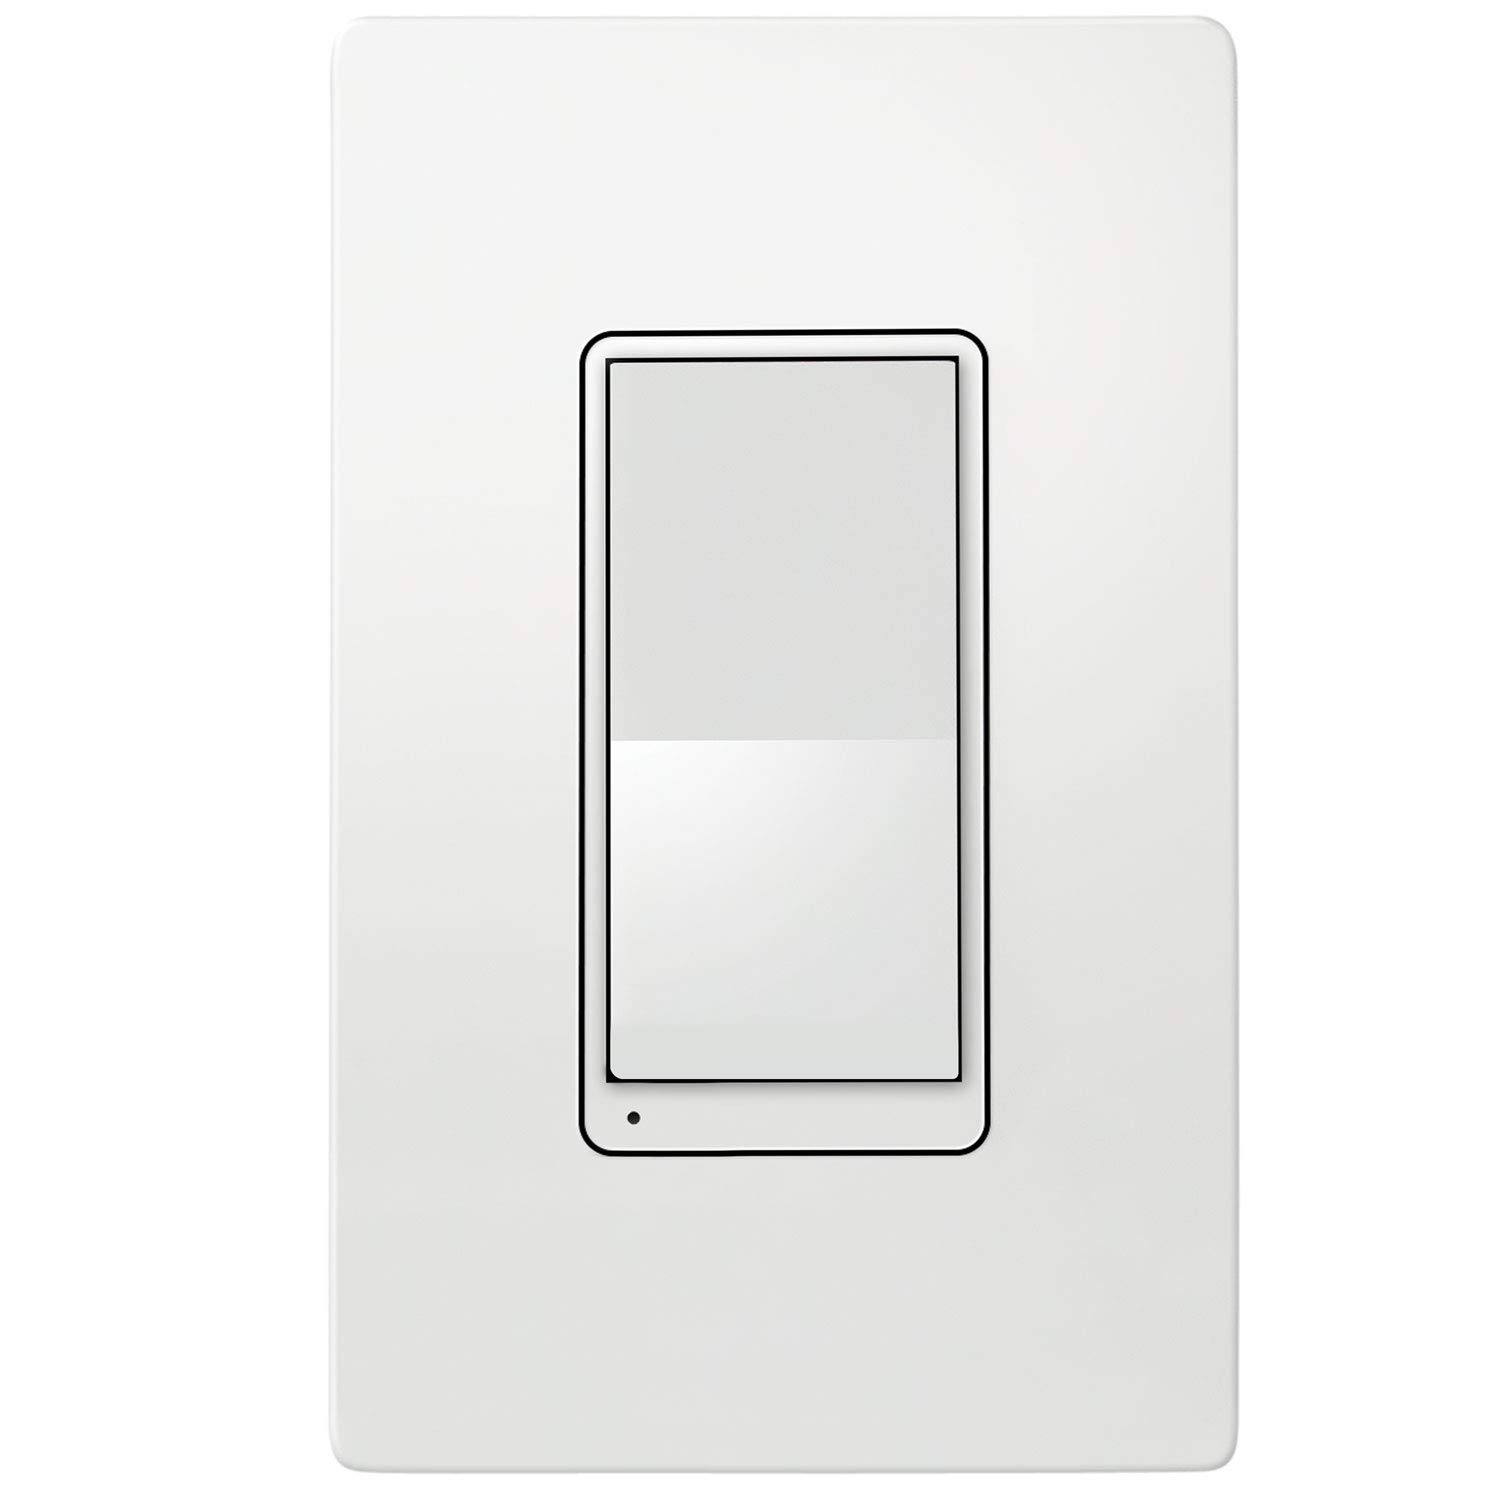 Best Rated In Electrical Light Switches Helpful Customer Reviews Wiring A Split Switched Receptacle Topgreener Add On Switch For Tgwf500d Wi Fi Dimmer Cannot Be Used As